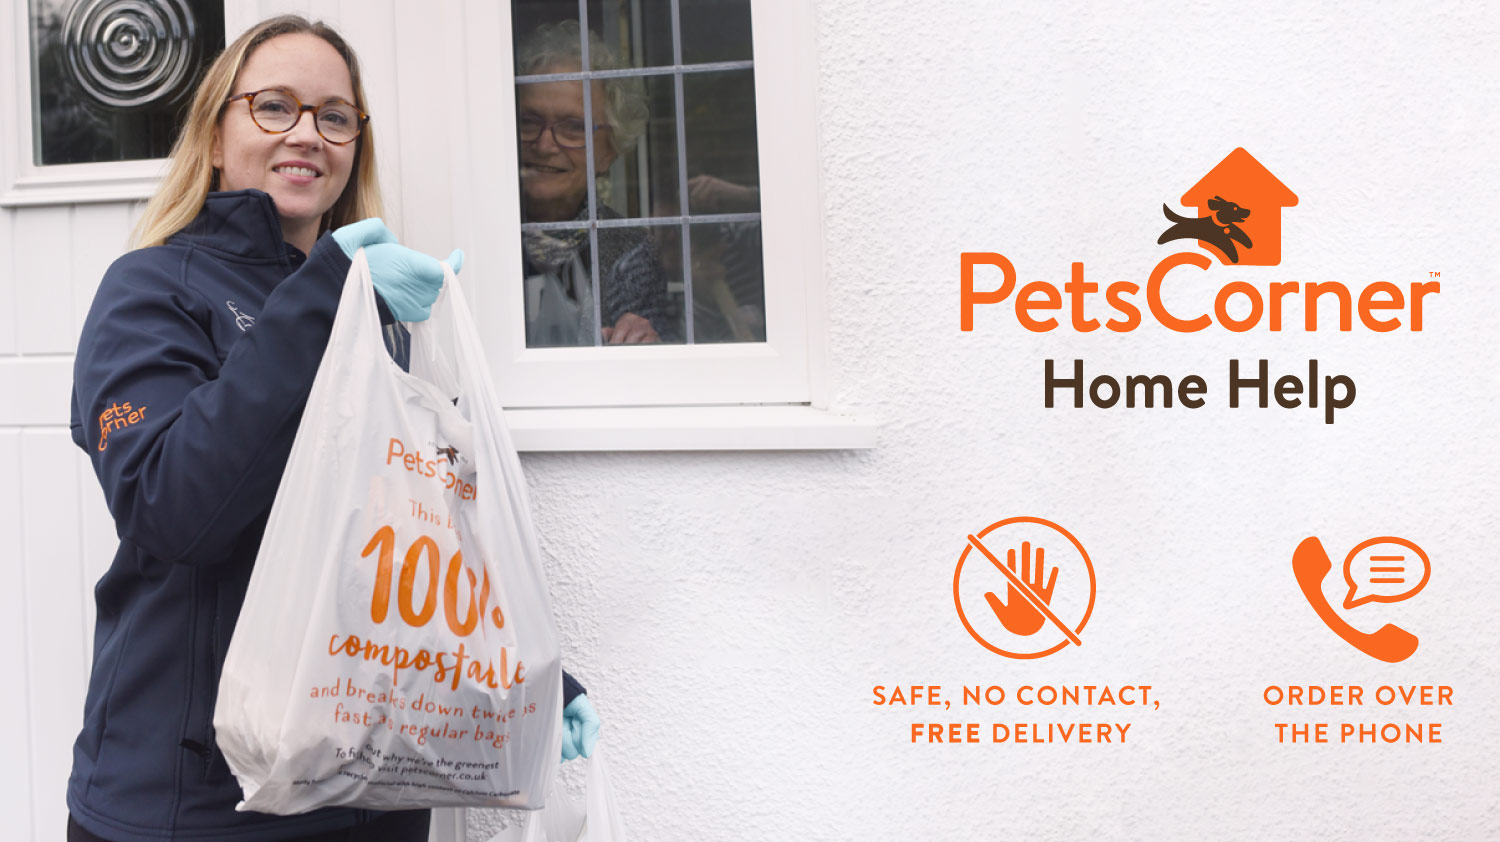 Pets Corner home help. Safe, no contact, free delivery. Order over the phone